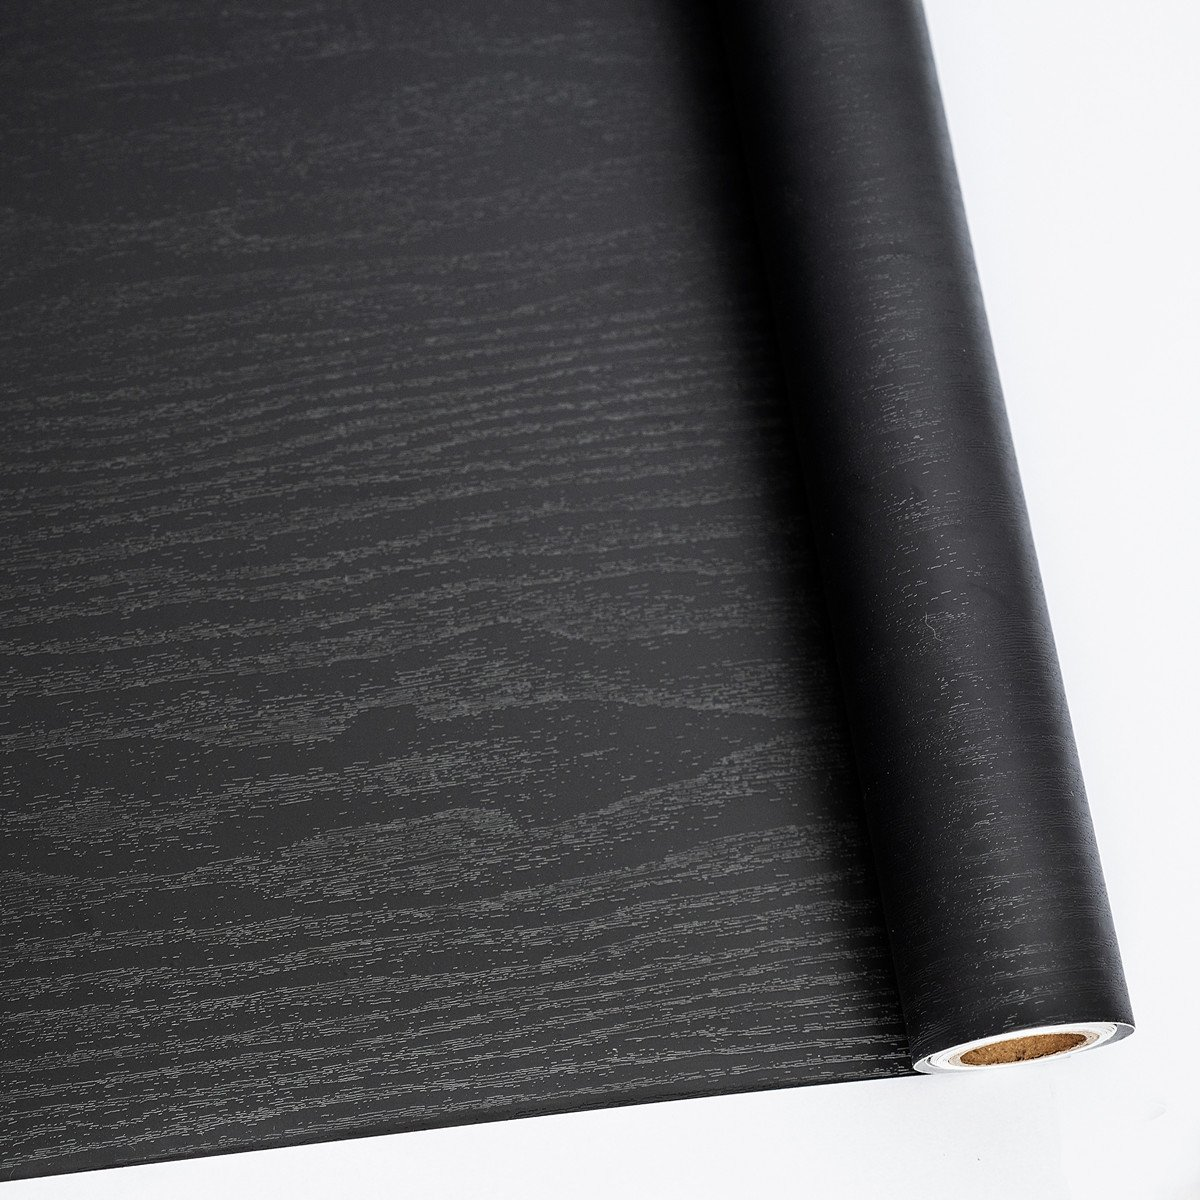 24'' X 118'' Black Wood Self Adhesive Paper Decorative Self-Adhesive Film Furniture Real Wood Tactile Sensation Surfaces Easy to Clean by Abyssaly